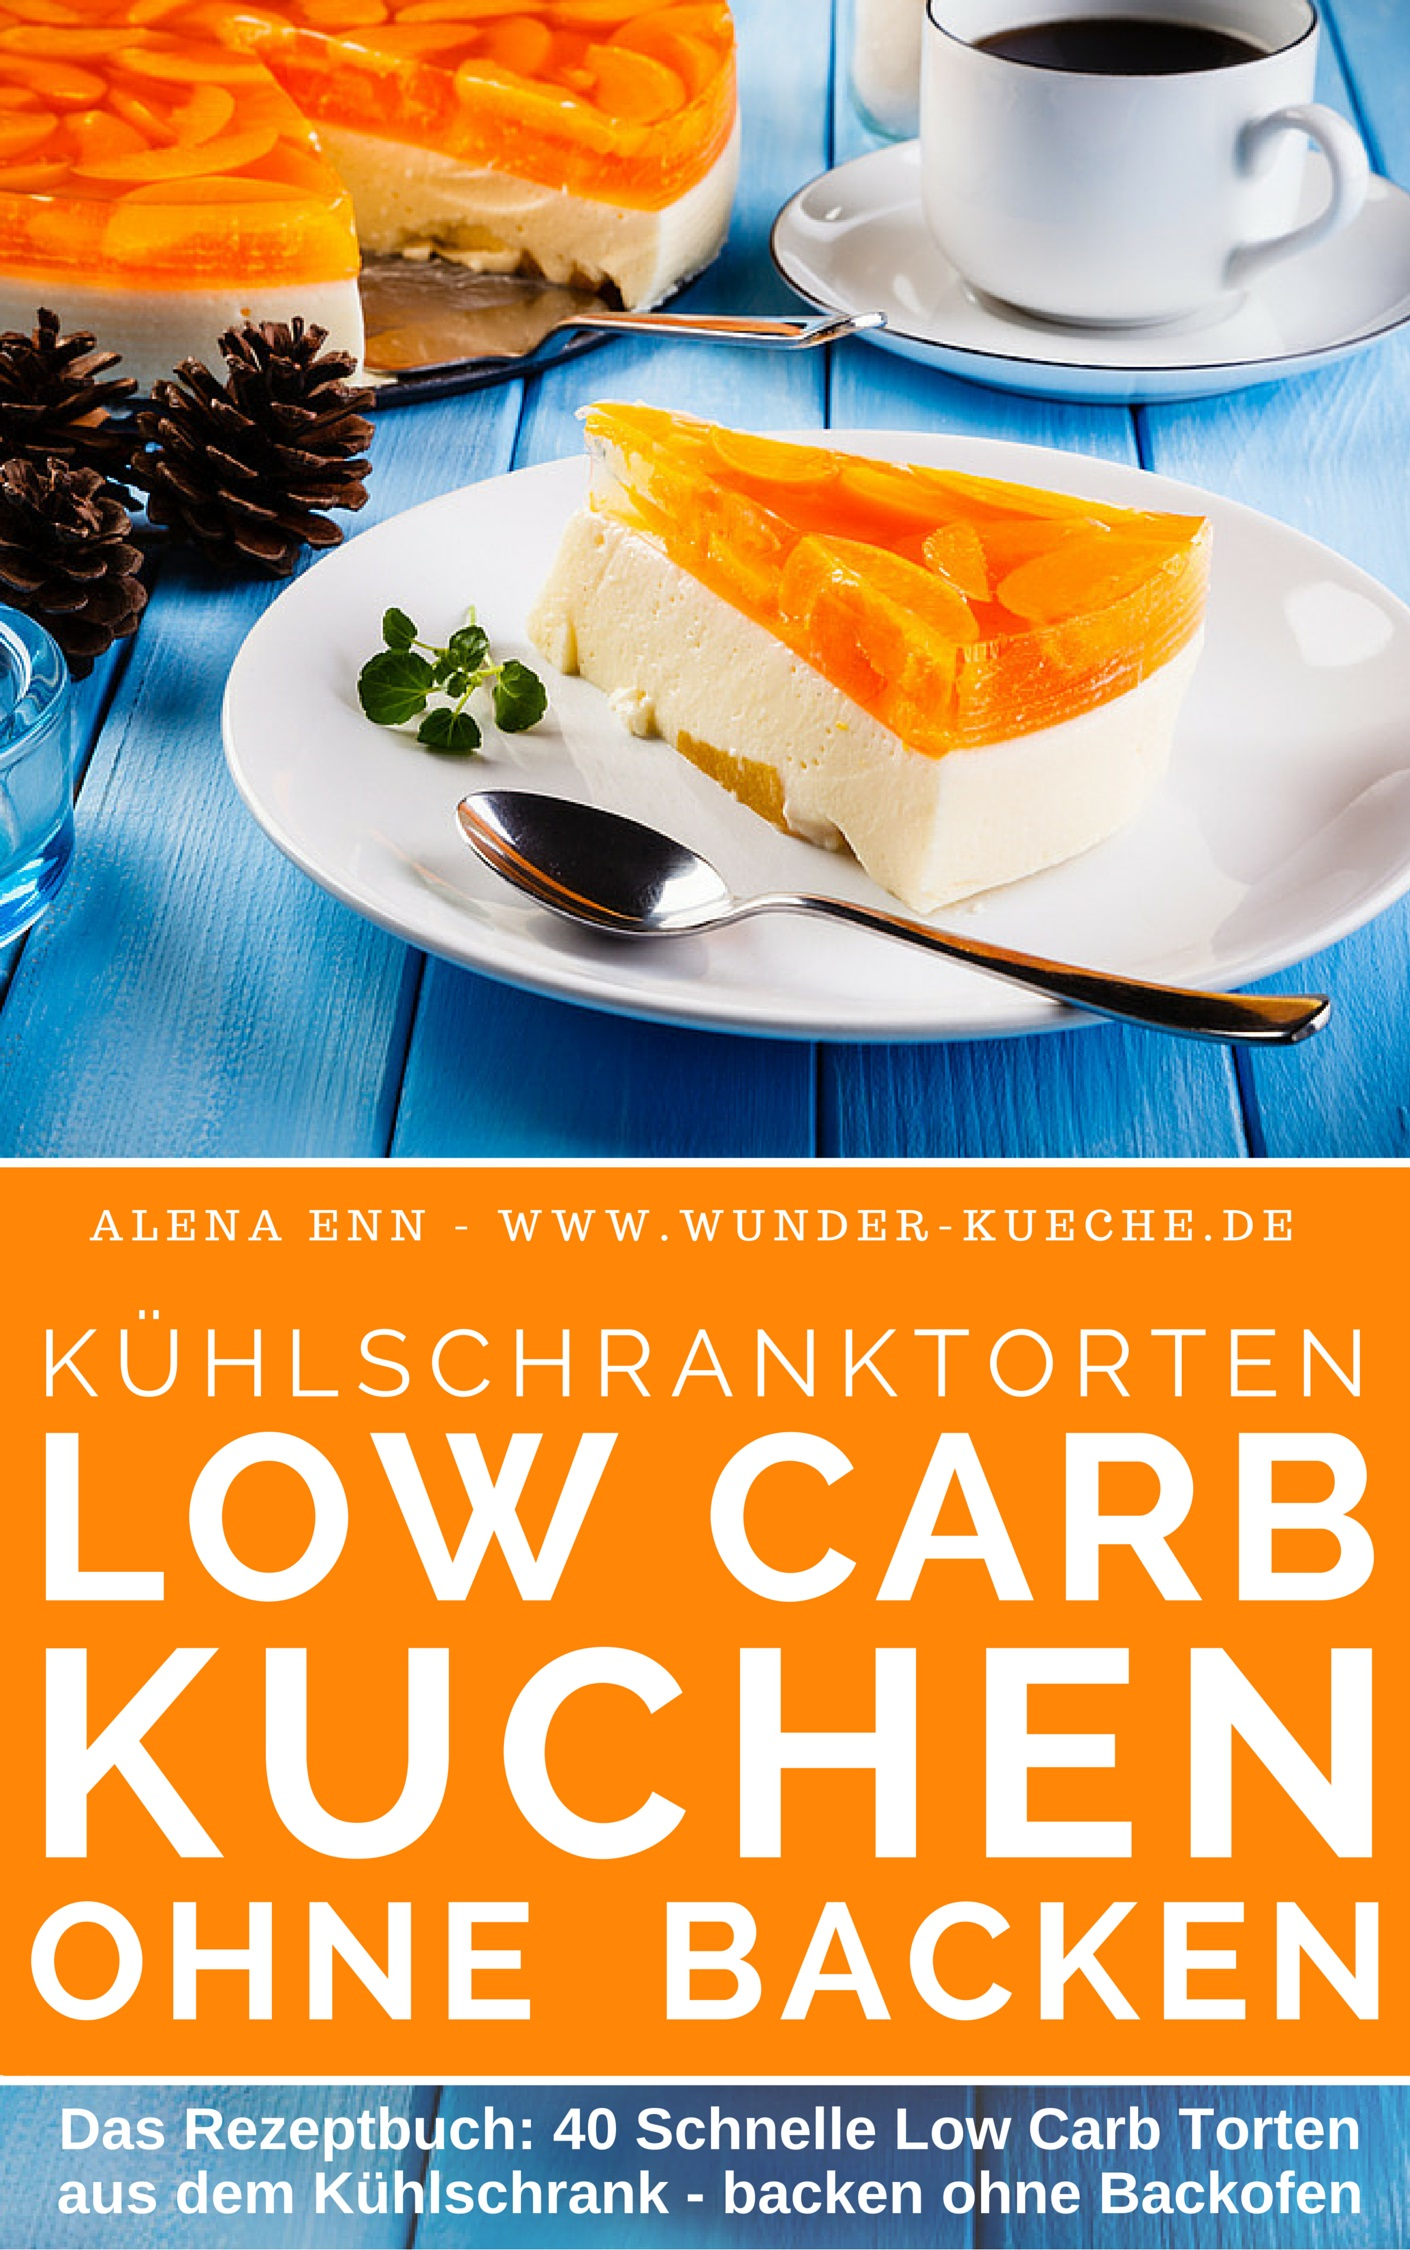 Low Carb Kuchen Ohne Backen Kalorienarme Kuchen Backen